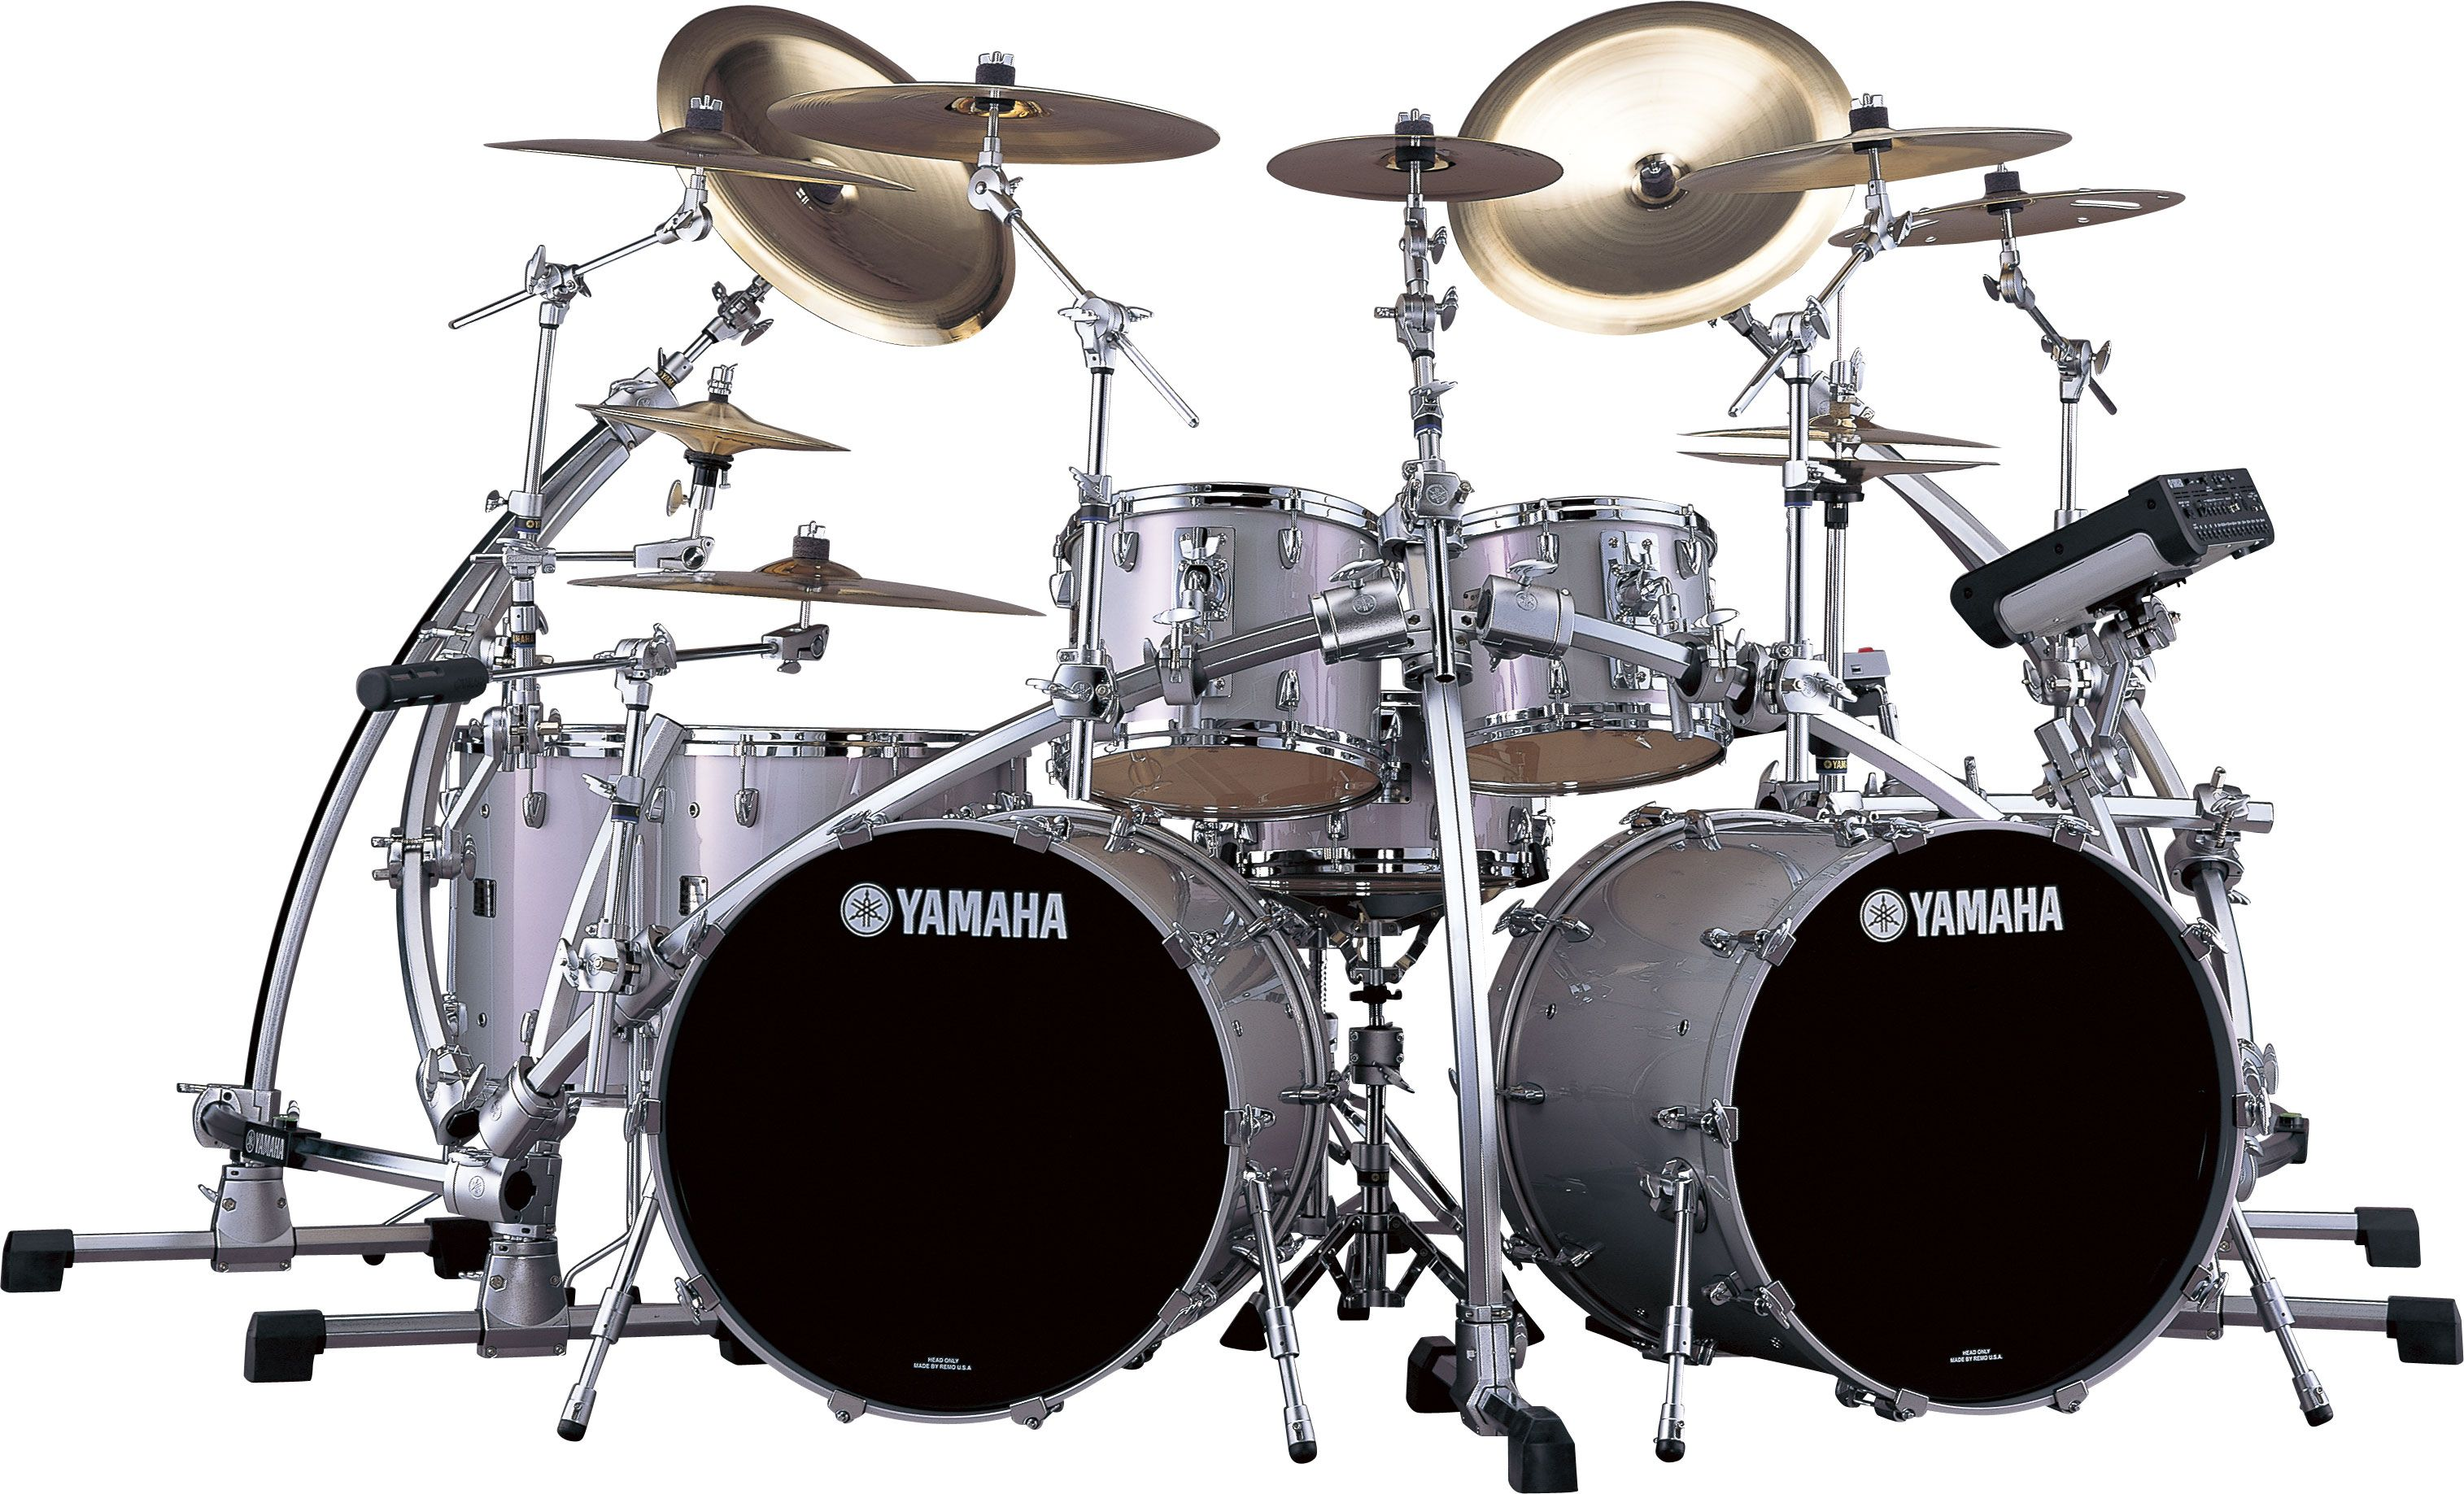 Yamaha Birch Double Bass With Images Drum Kits Yamaha Drums